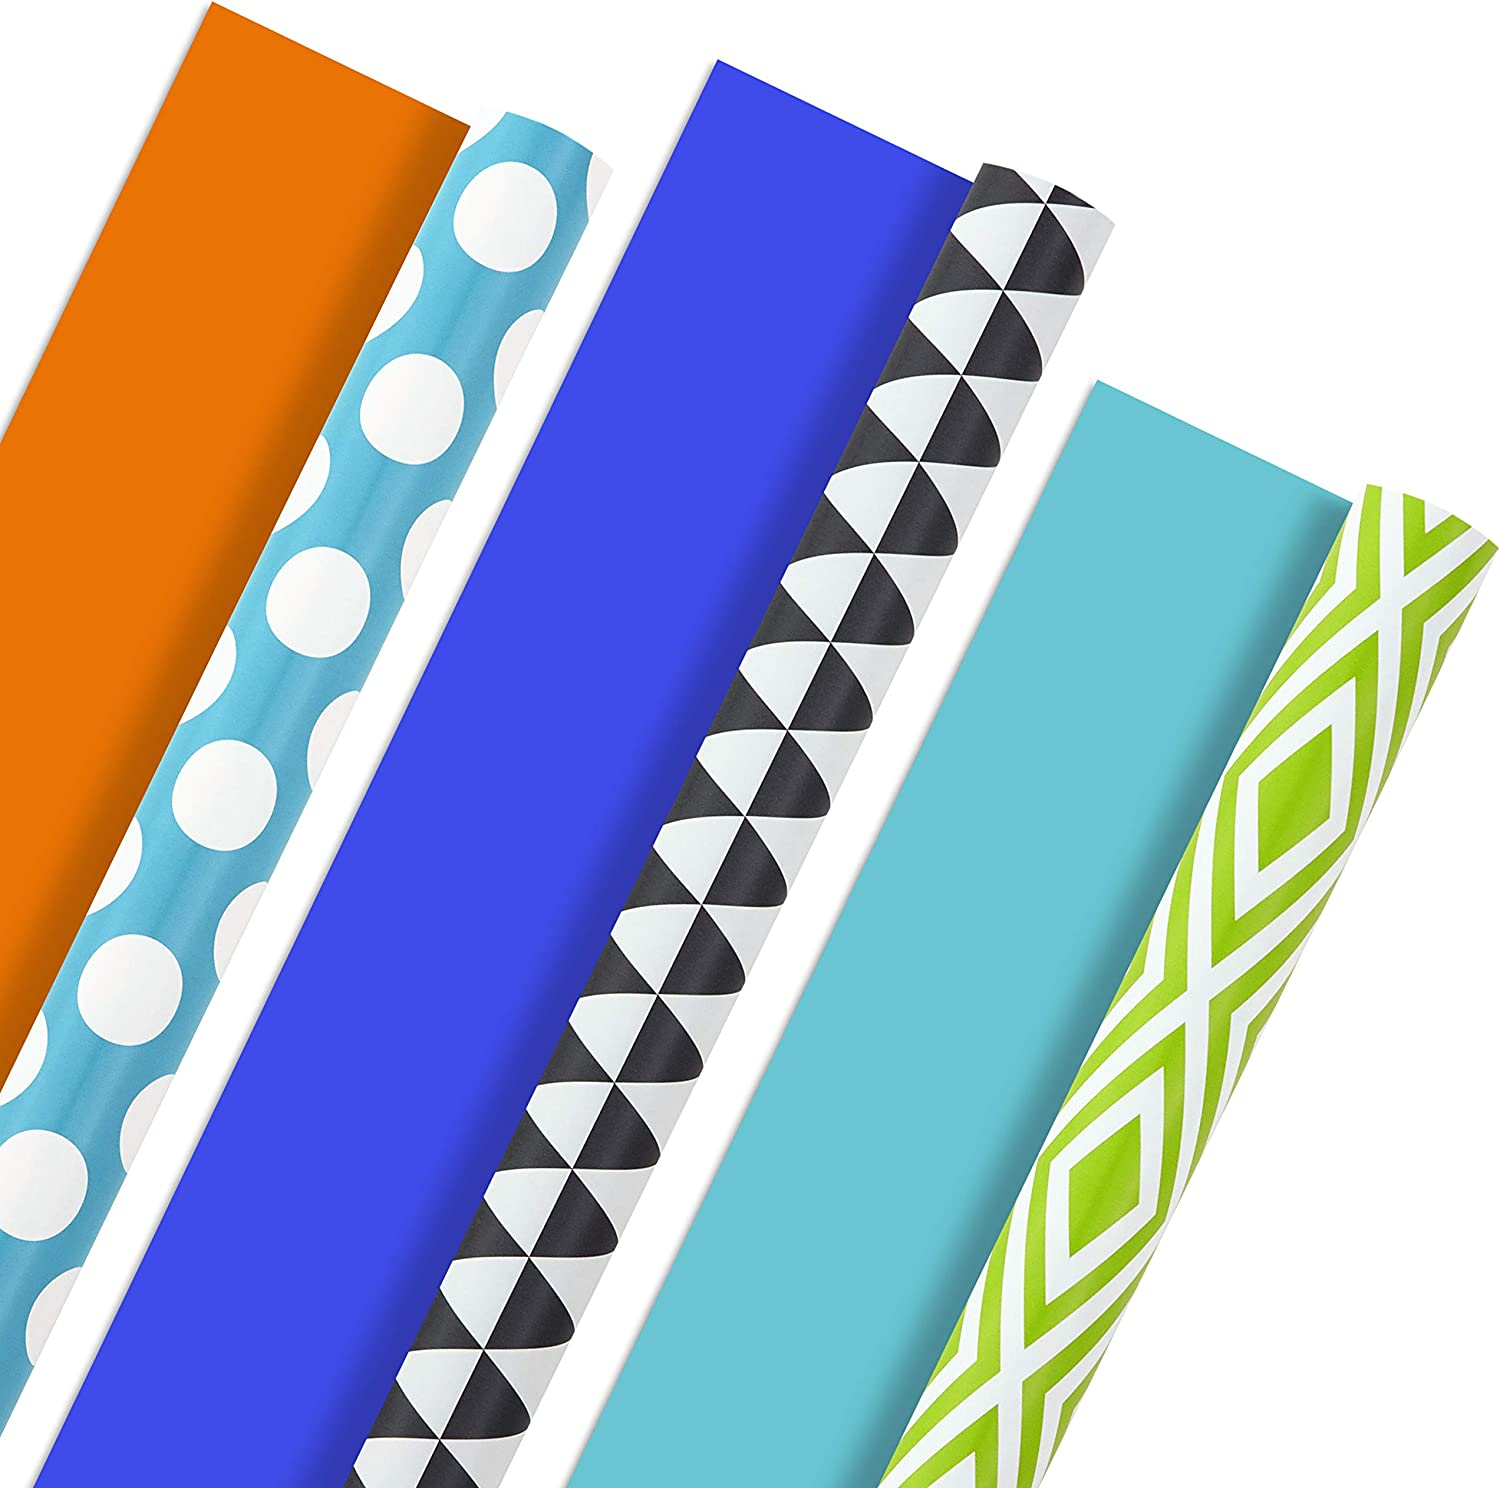 Hallmark Reversible Wrapping Paper, Brights - Green, Gray, Teal Prints & Orange, Blue, Purple Solids (Pack of 3, 120 sq. ft. ttl.) for Birthdays, Graduations, Father's Day, Baby Showers, Halloween: Kitchen & Dining